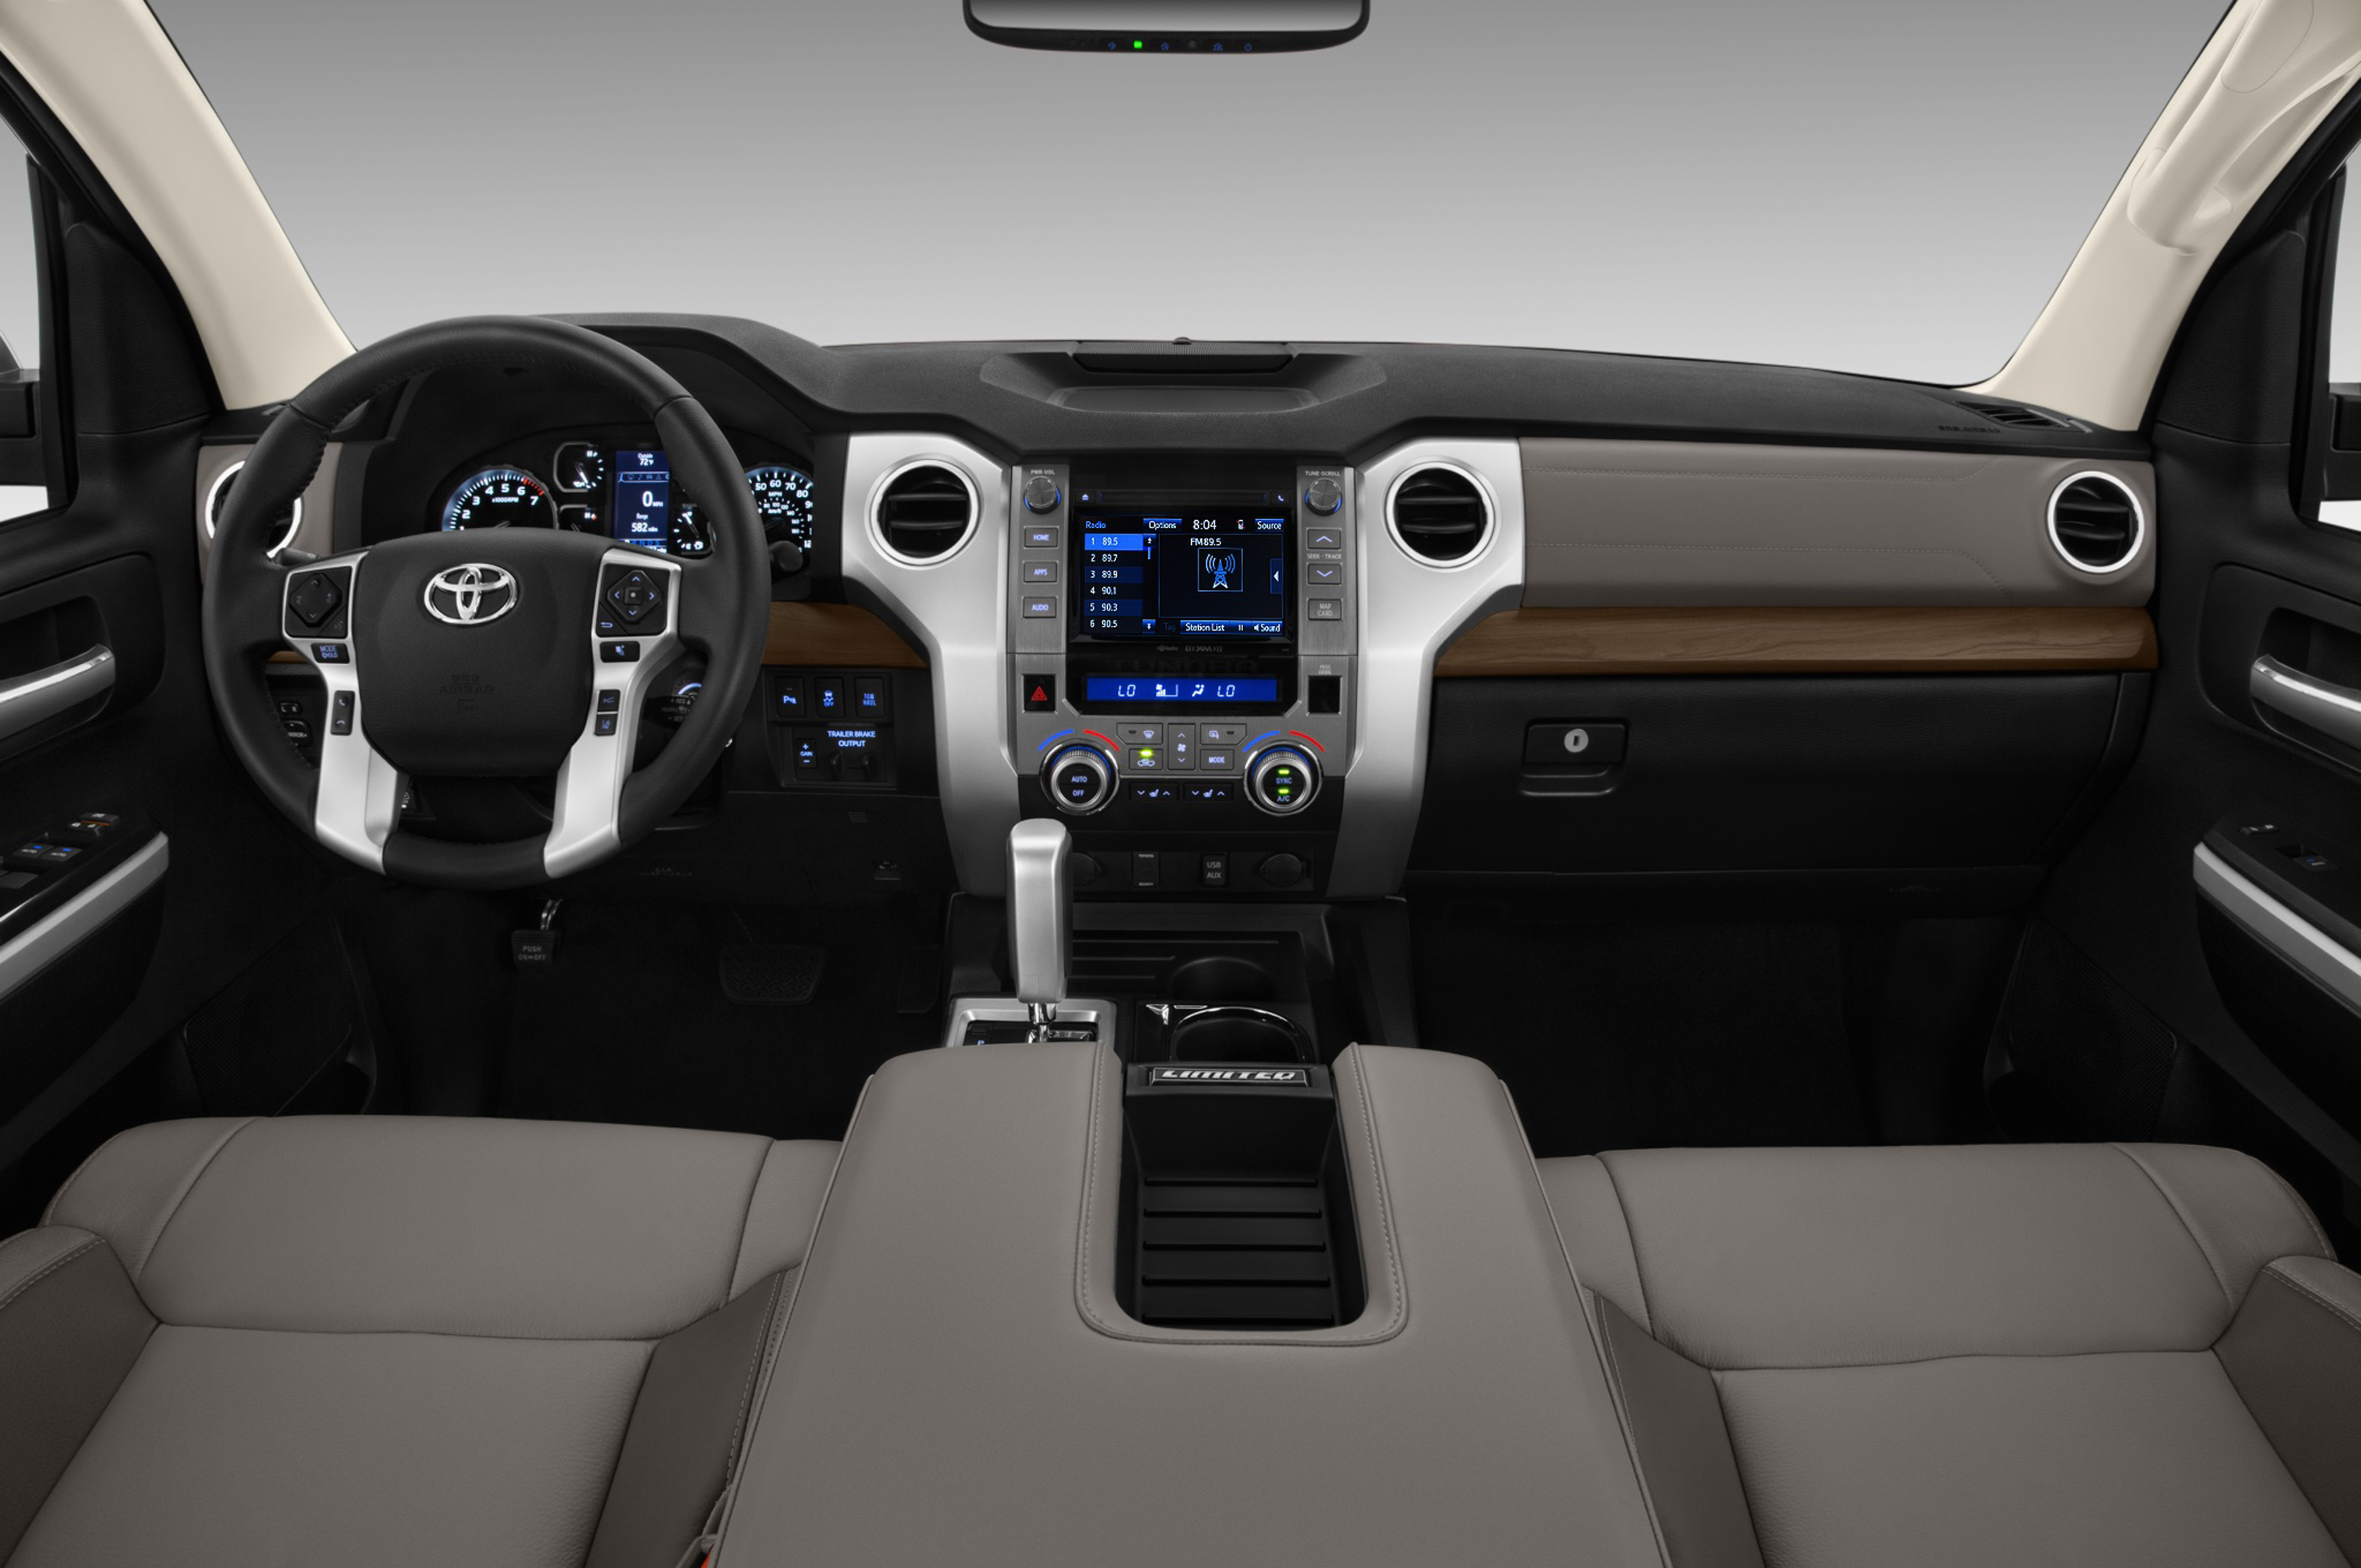 The interior of the 2018 Toyota keeps its best features — HVAC vents and an early-to-operate stereo among them.